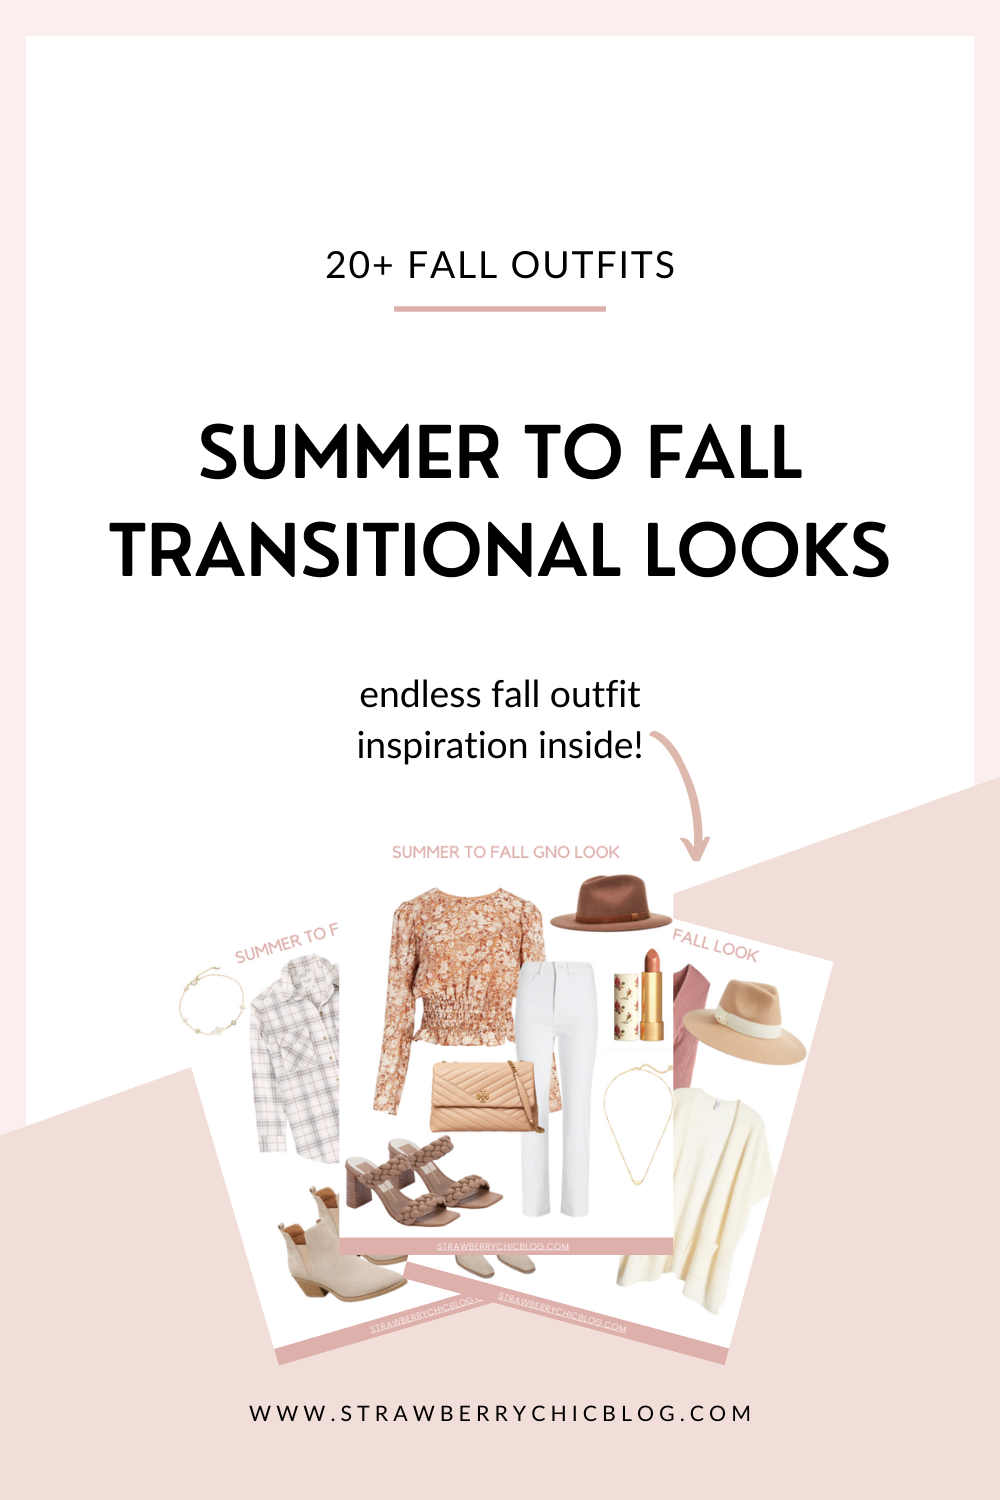 Summer to Fall Transitional Outfits + How to Style Them